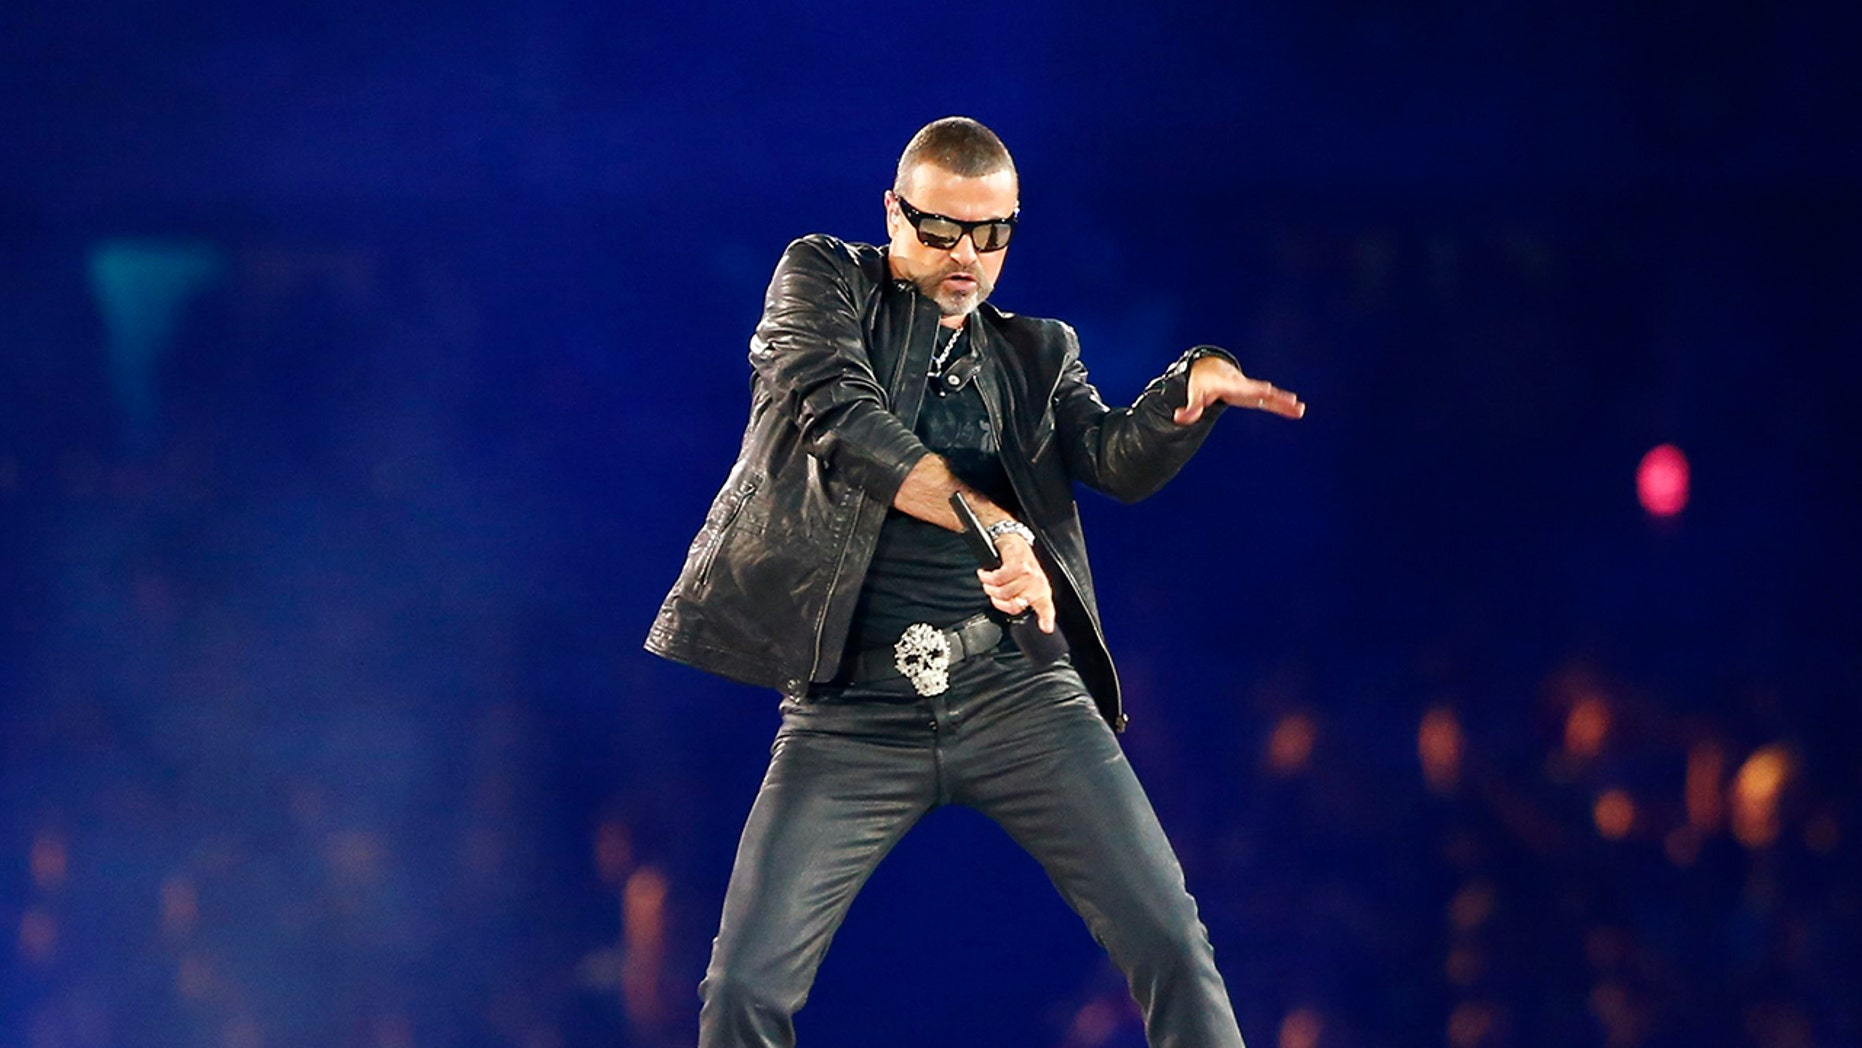 George Michael performs at the closing ceremony of the London 2012 Olympic Games at the Olympic stadium August 12, 2012.